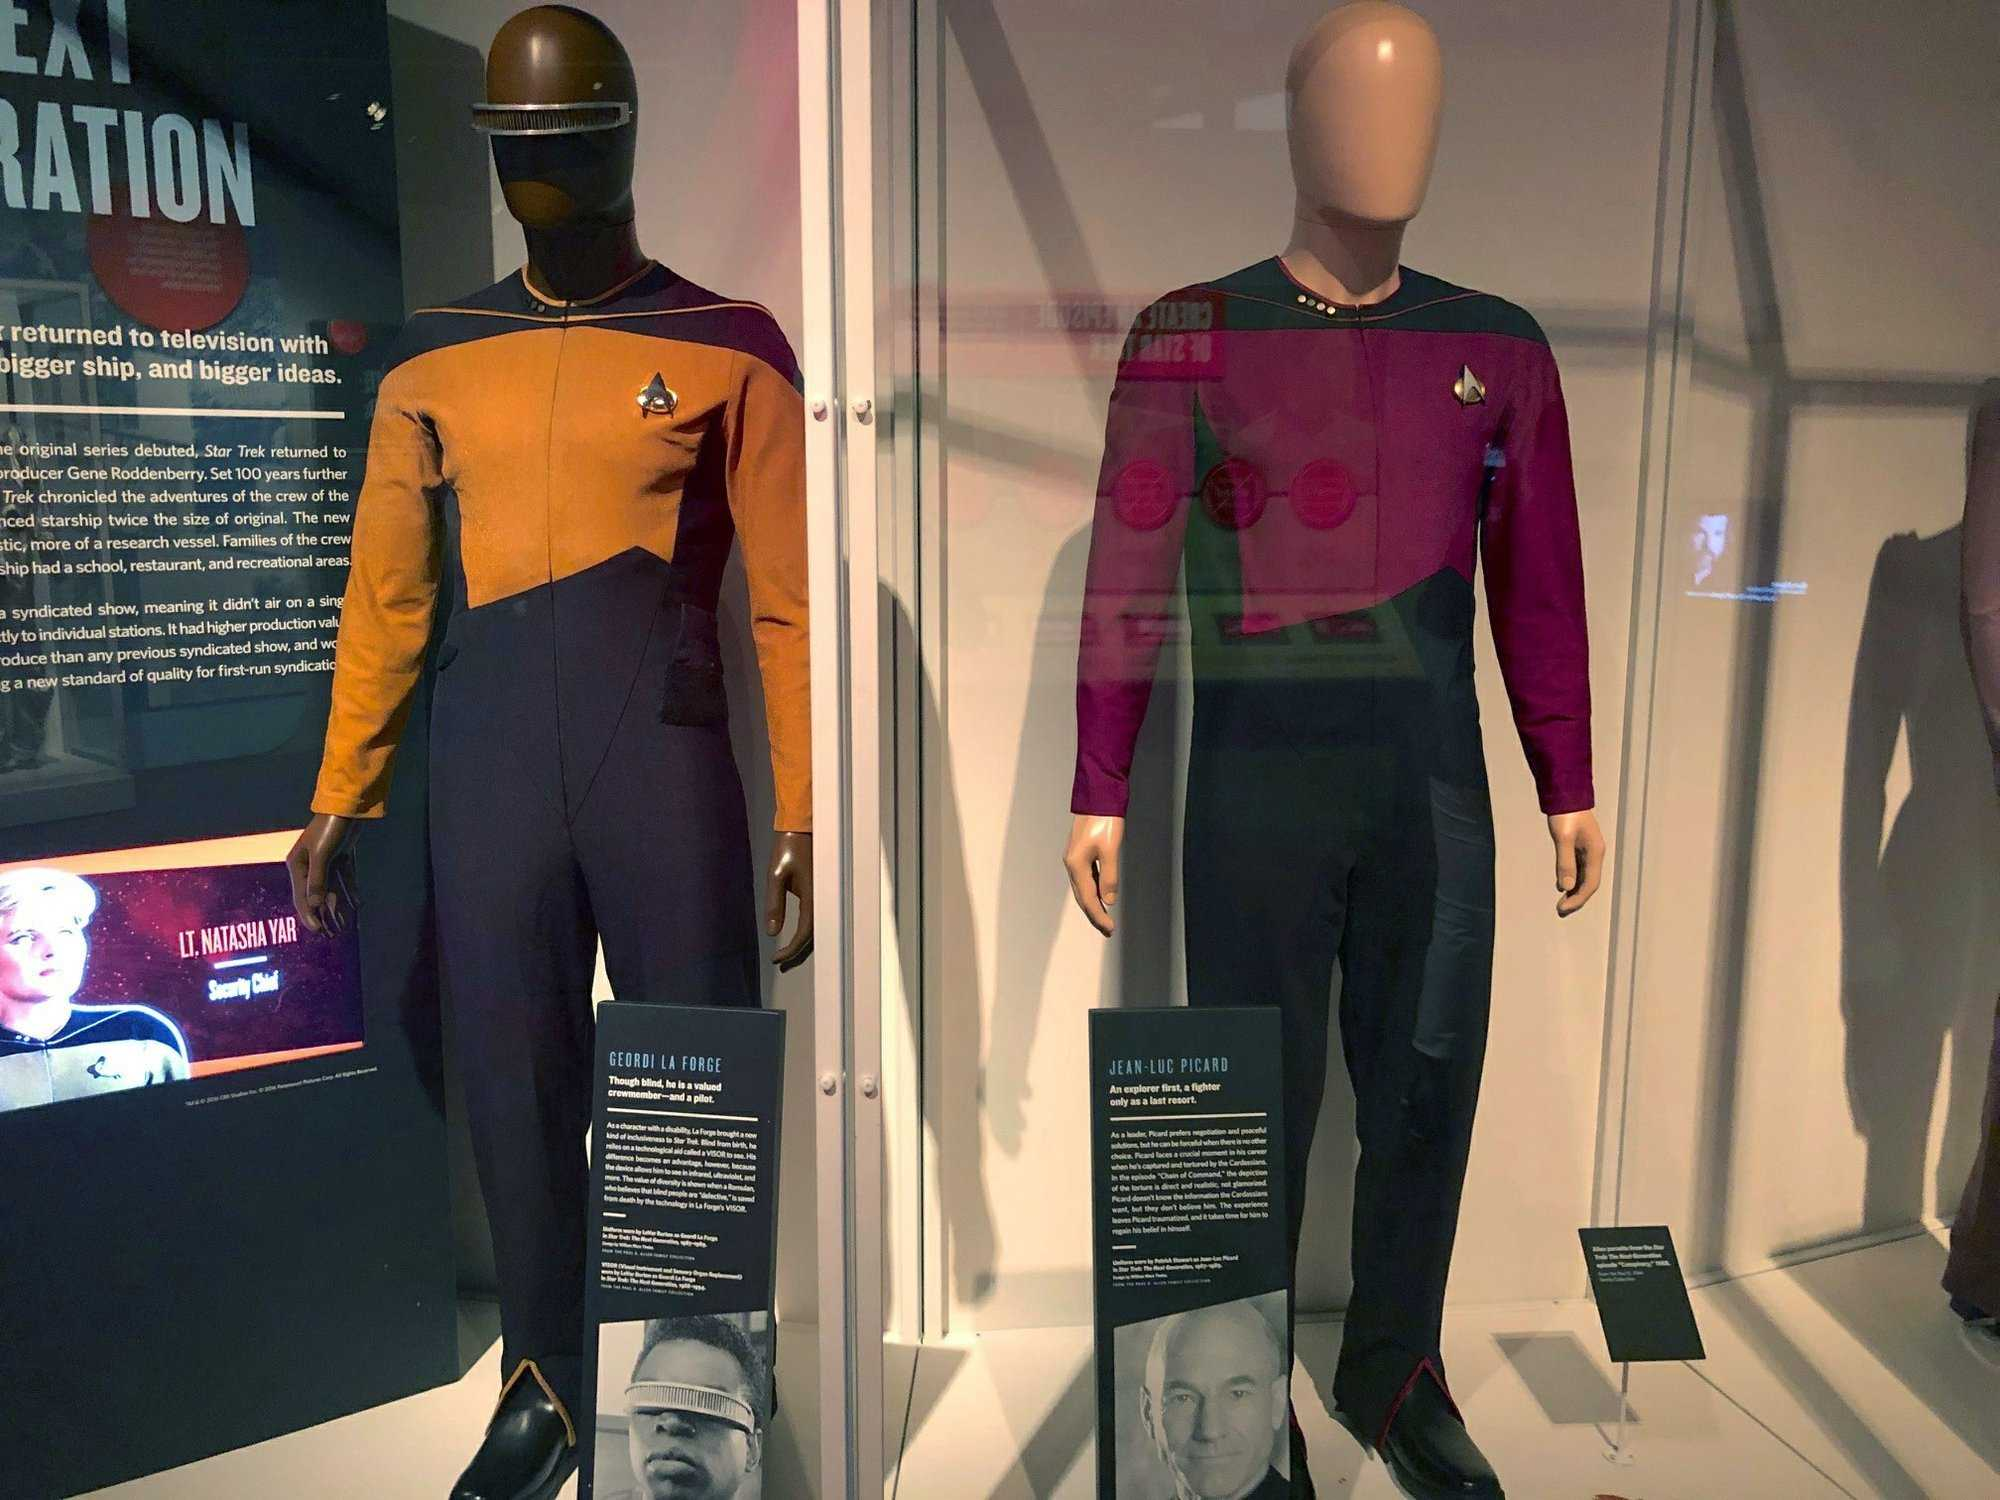 Museum Exhibition Offers Glimpse Into World of 'Star Trek'